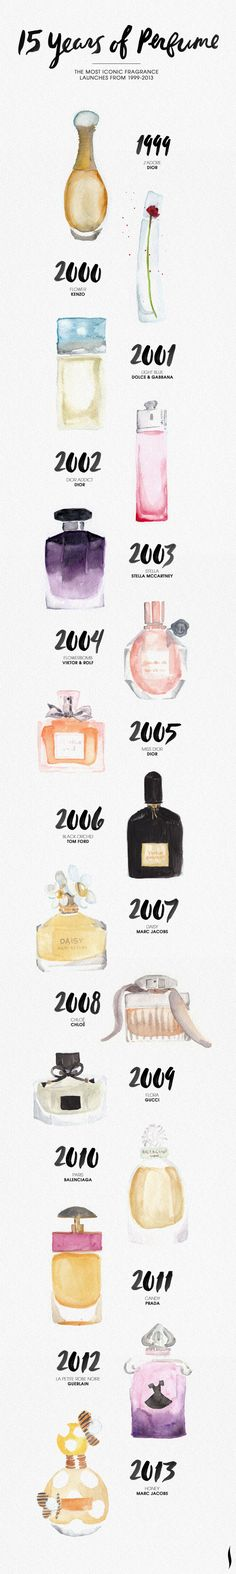 Scent is strongly linked to memory. What's your favorite #perfume launch of the past 15 years? #SephoraSweet15 #Sephora